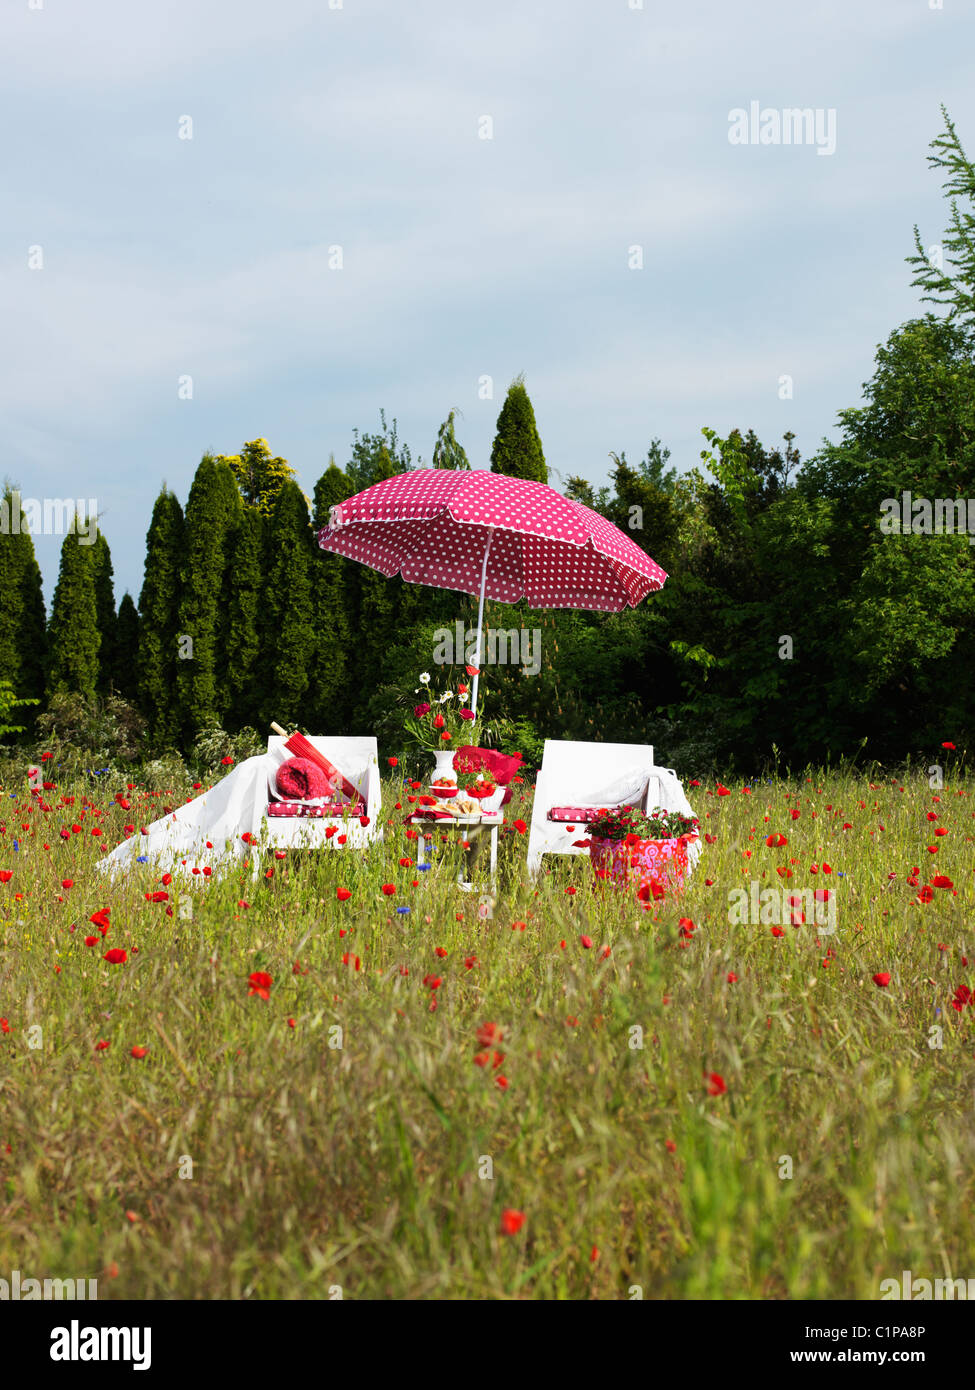 Couple of sun loungers and pink sunshade in field with poppies - Stock Image